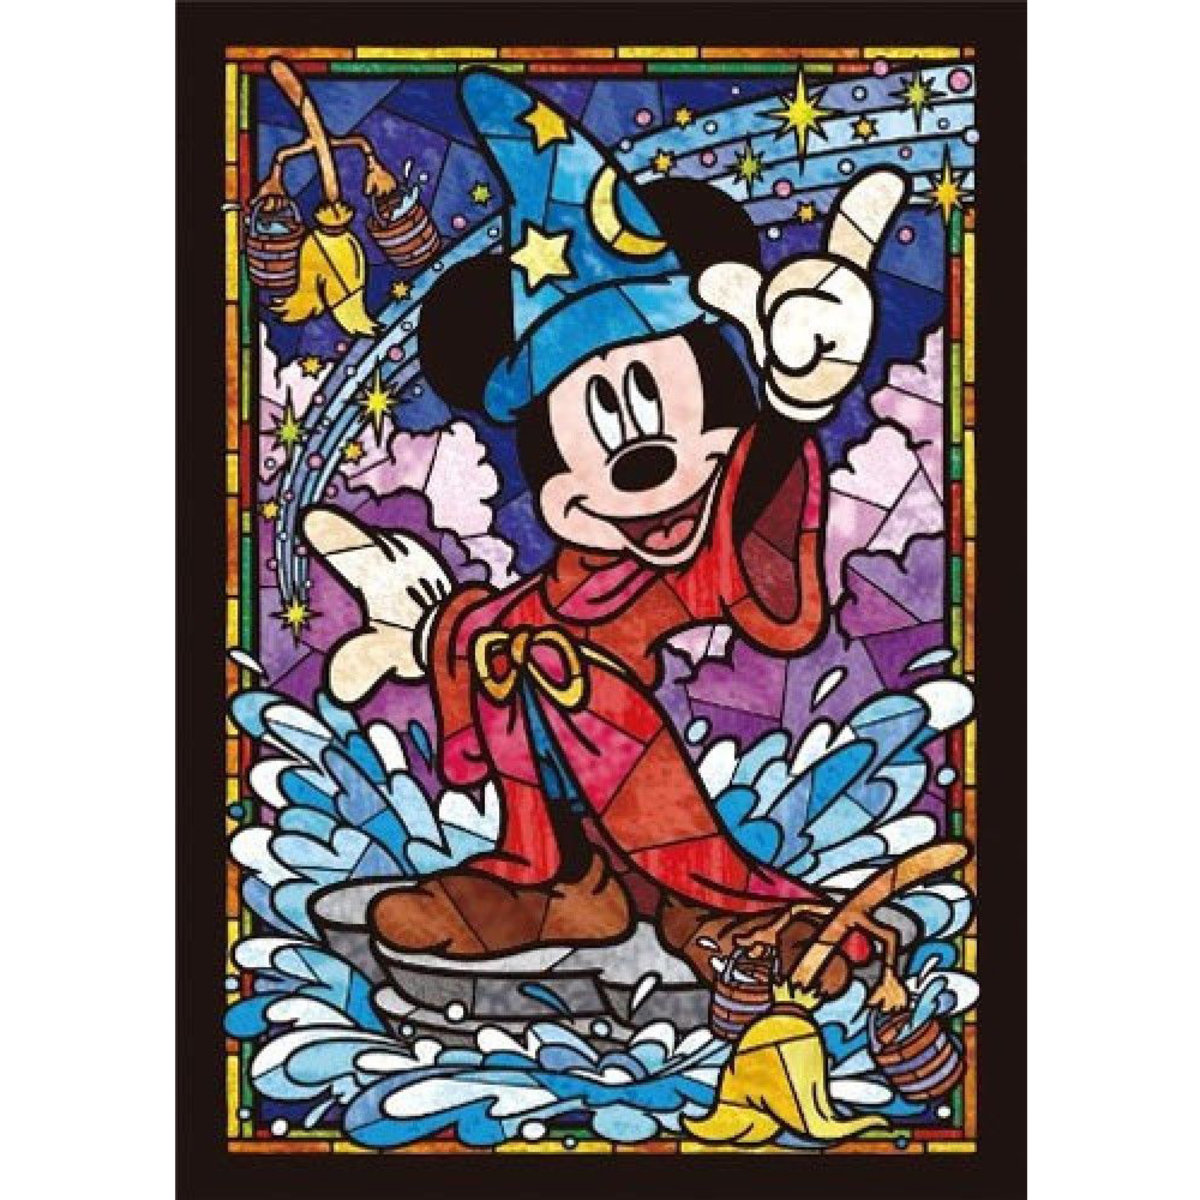 DSG-266-747 266 pieces puzzle Mickey Mouse Stained Glass (4905823857472) [Licensed by Disney]